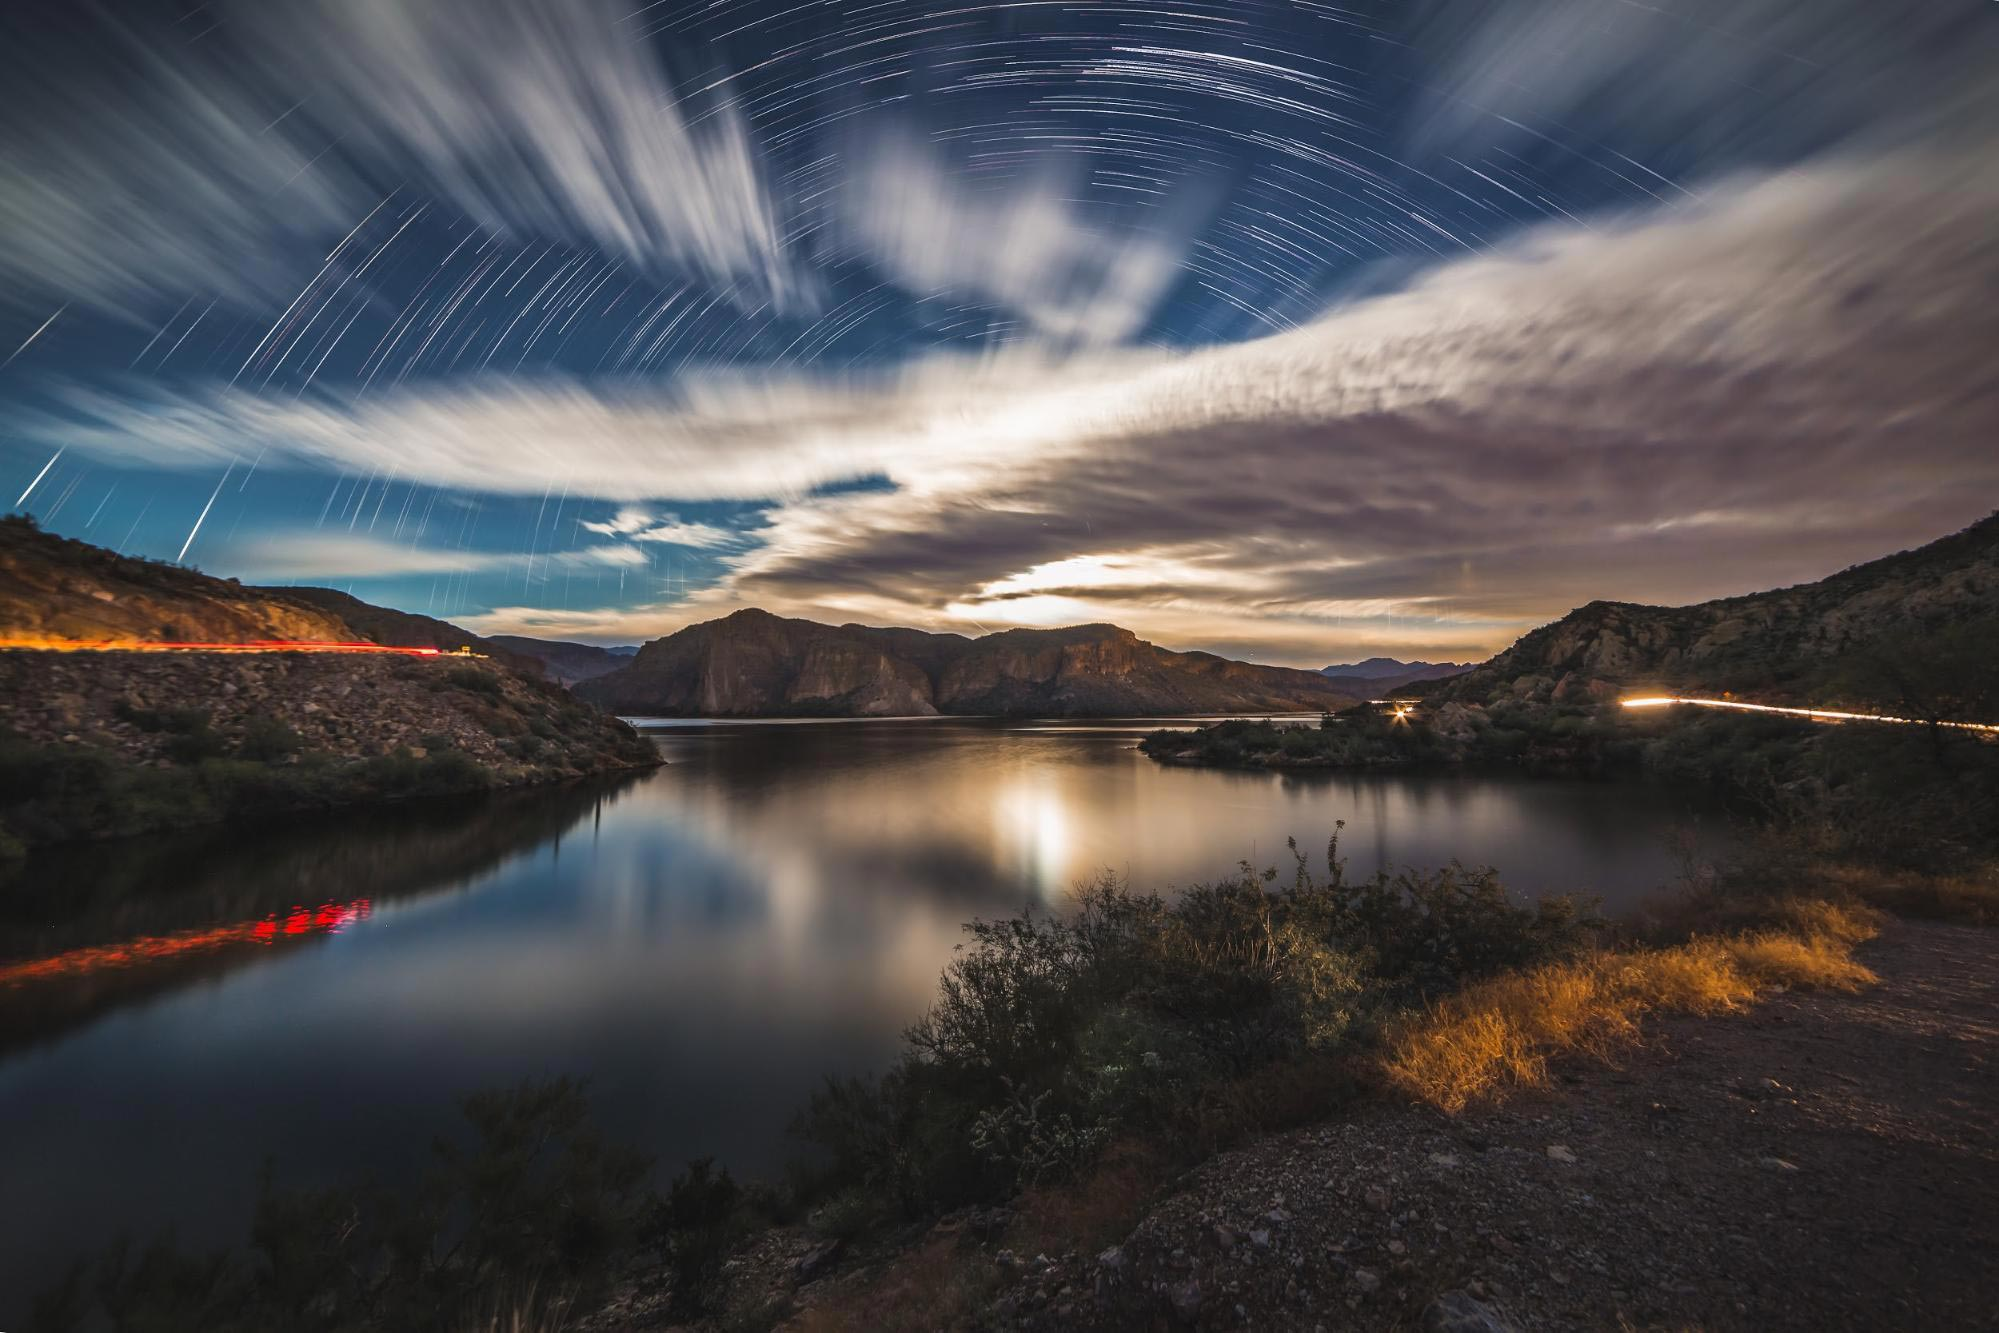 moonlit-landscapes-lake-star-trails